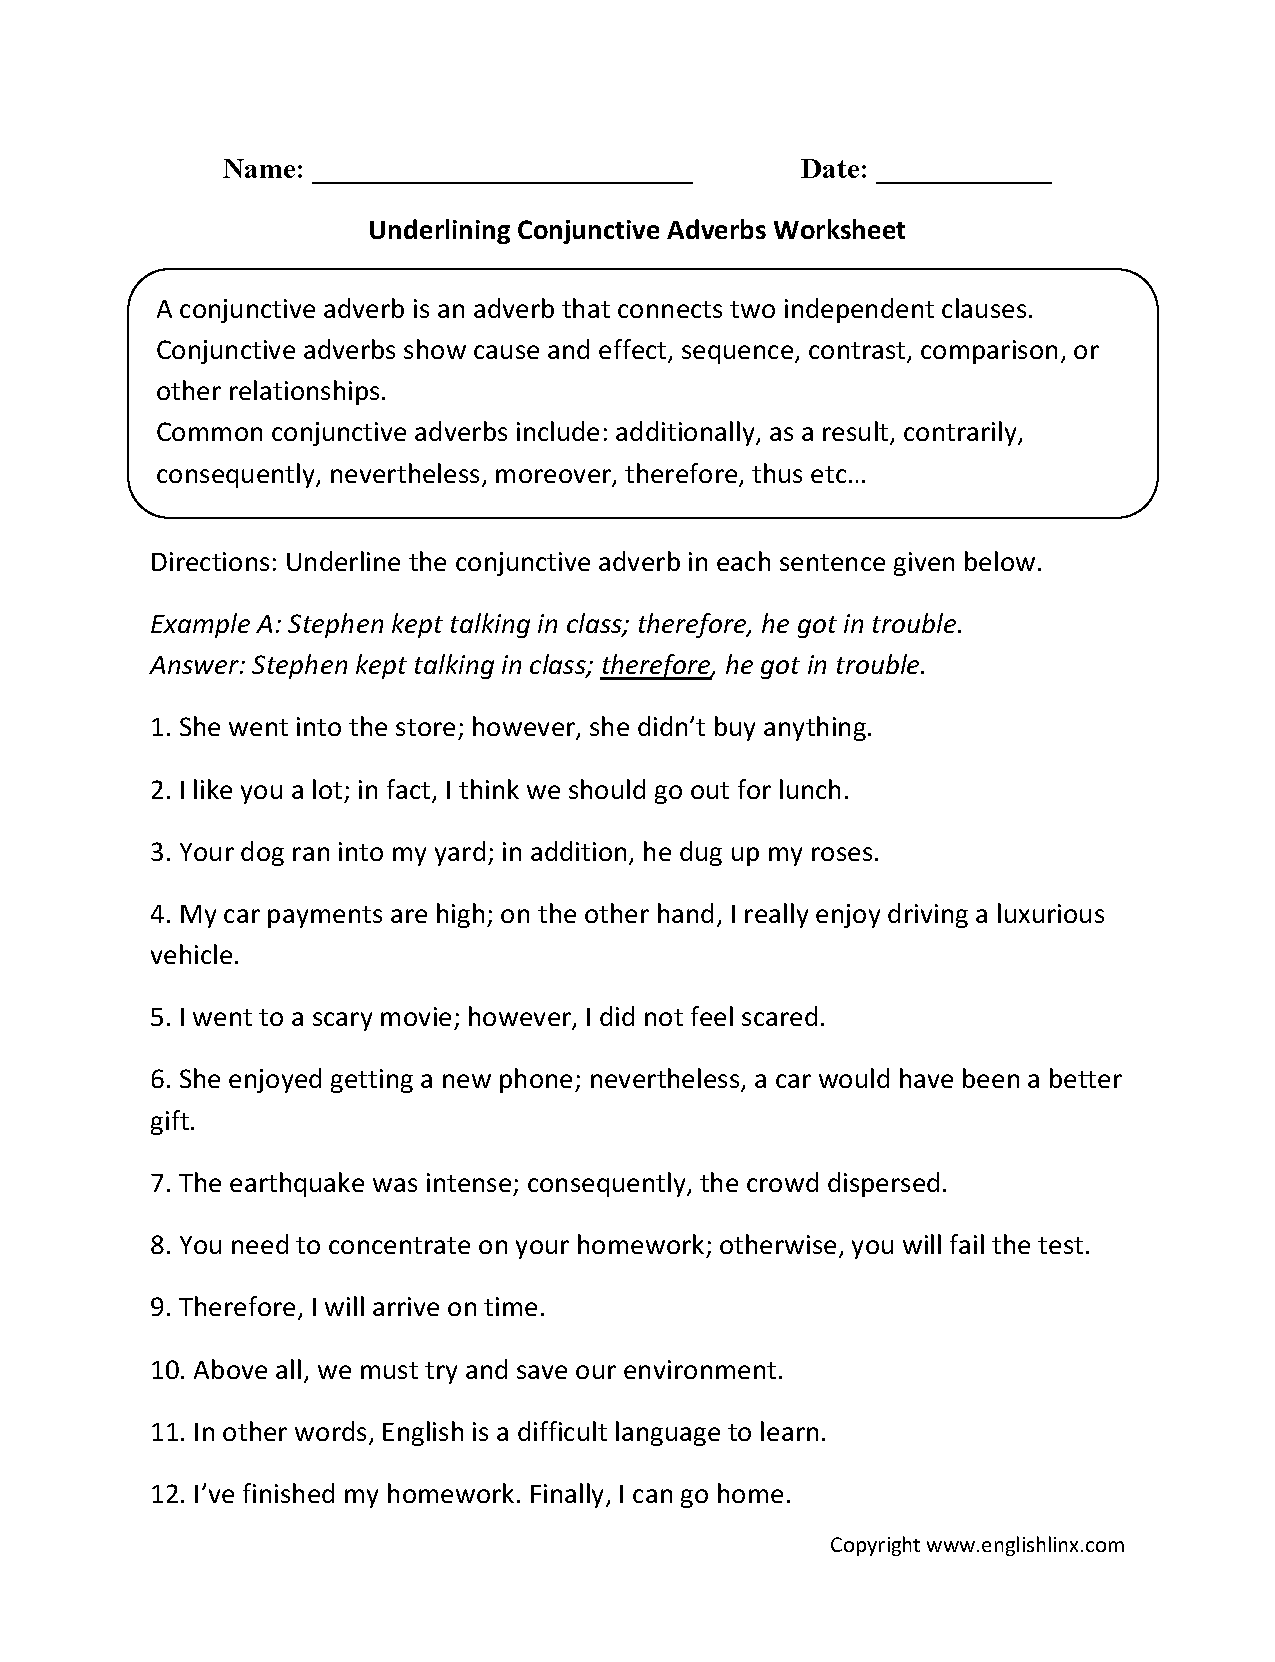 Aldiablosus  Sweet Englishlinxcom  Conjunctions Worksheets With Exciting Worksheet With Comely Social Studies Printable Worksheets Also Avancemos  Worksheets In Addition Comparing Decimals Worksheets Th Grade And Visual Patterns Worksheet As Well As Proportion Worksheet Th Grade Additionally Fun St Grade Worksheets From Englishlinxcom With Aldiablosus  Exciting Englishlinxcom  Conjunctions Worksheets With Comely Worksheet And Sweet Social Studies Printable Worksheets Also Avancemos  Worksheets In Addition Comparing Decimals Worksheets Th Grade From Englishlinxcom